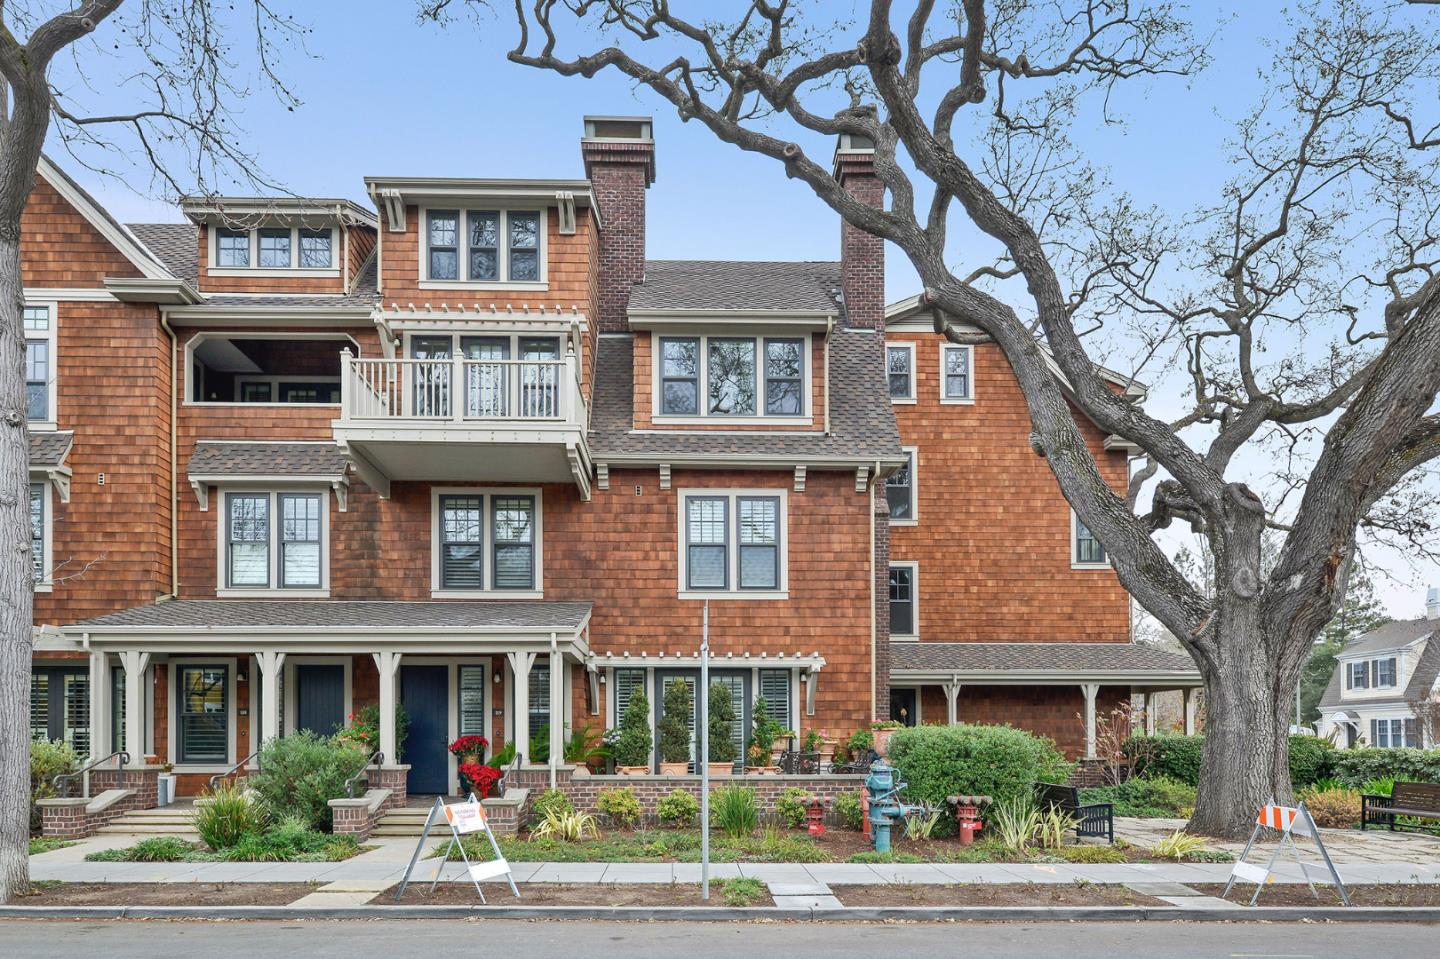 Condominium for Rent at 325 Channing Avenue 325 Channing Avenue Palo Alto, California 94301 United States